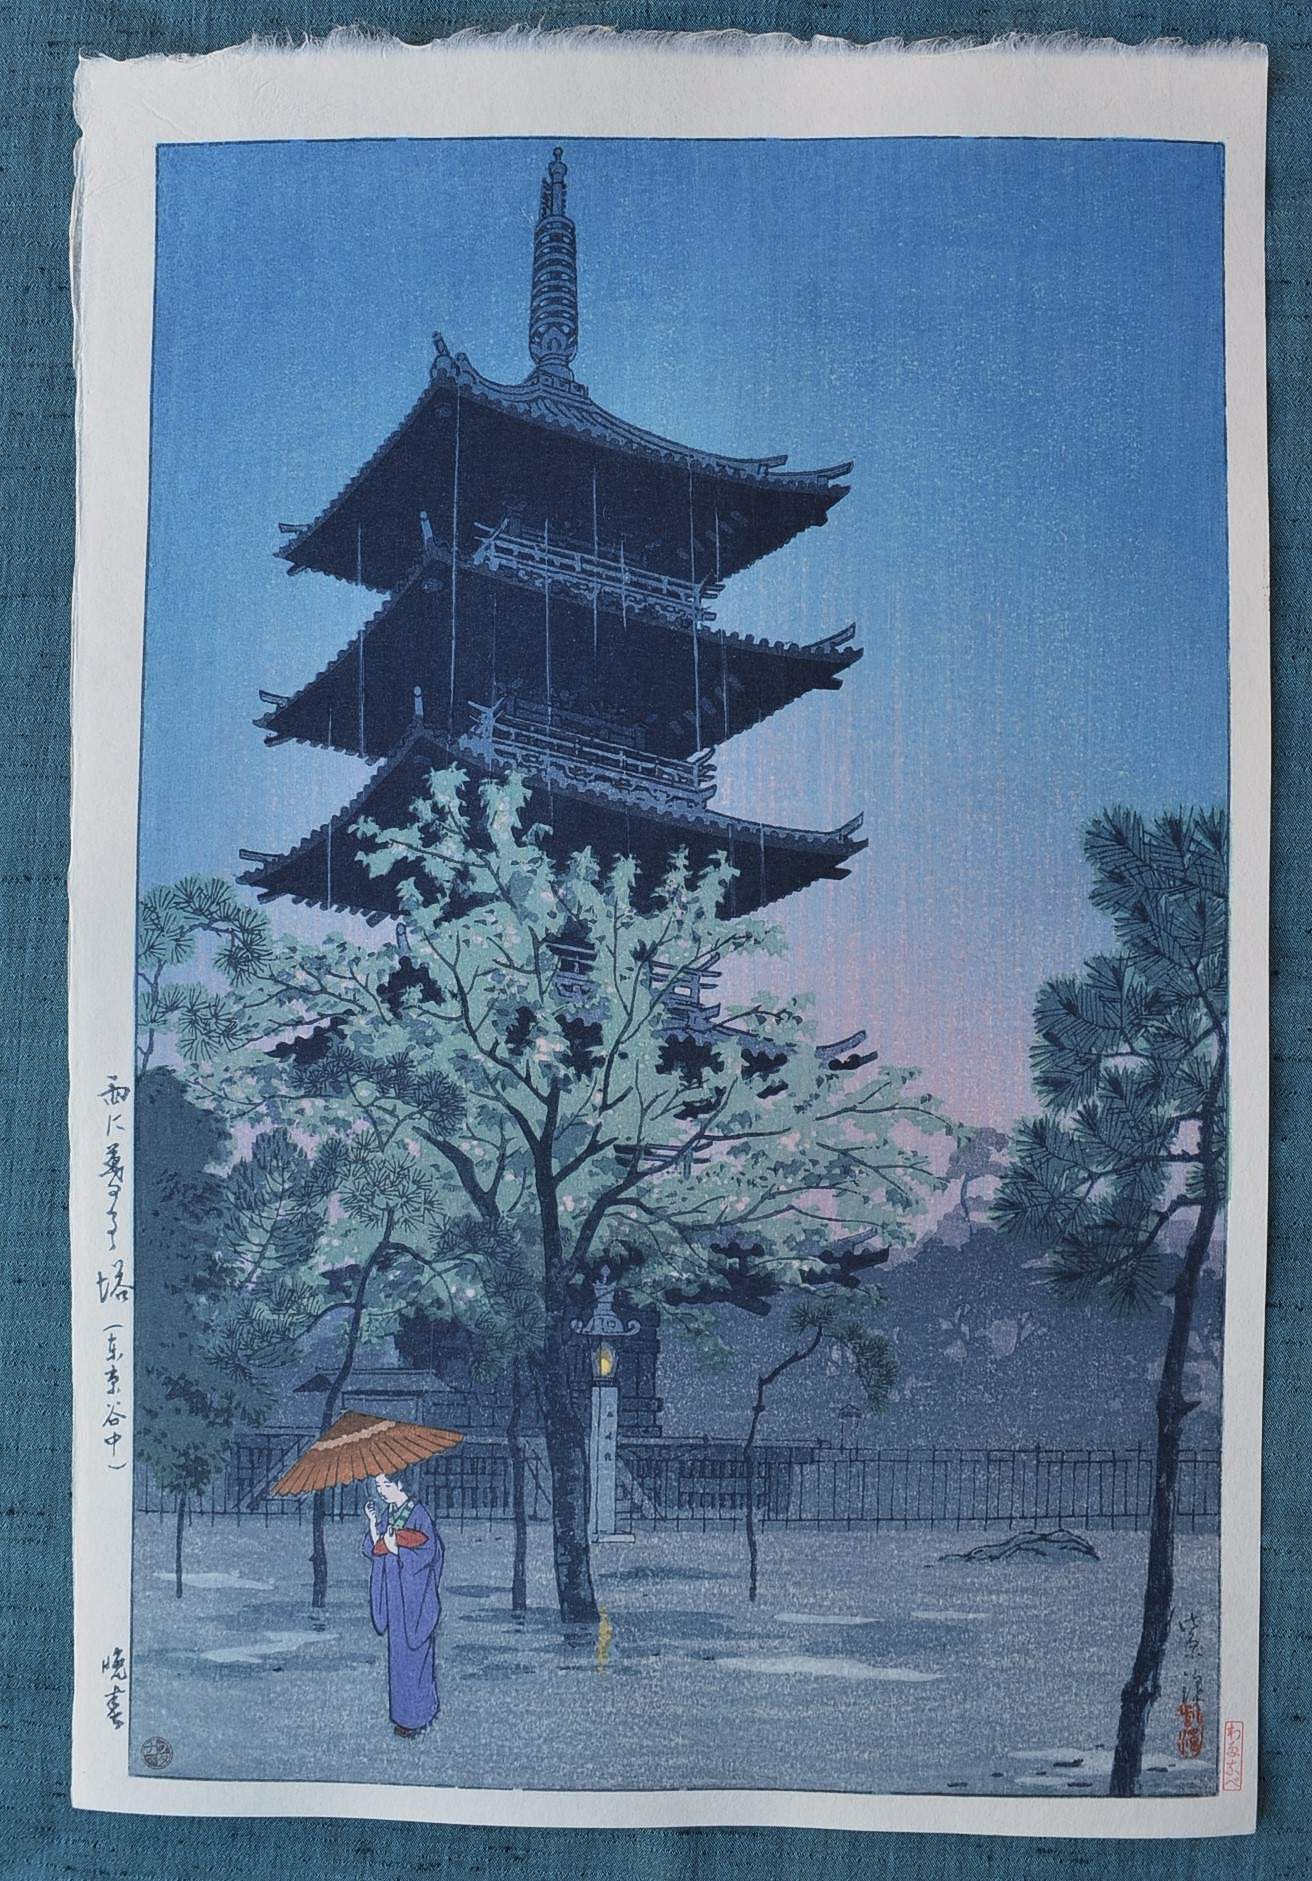 SHIRO KASAMATSU: #P4507 RAINY EVENING AT UENO PARK, YANAKA